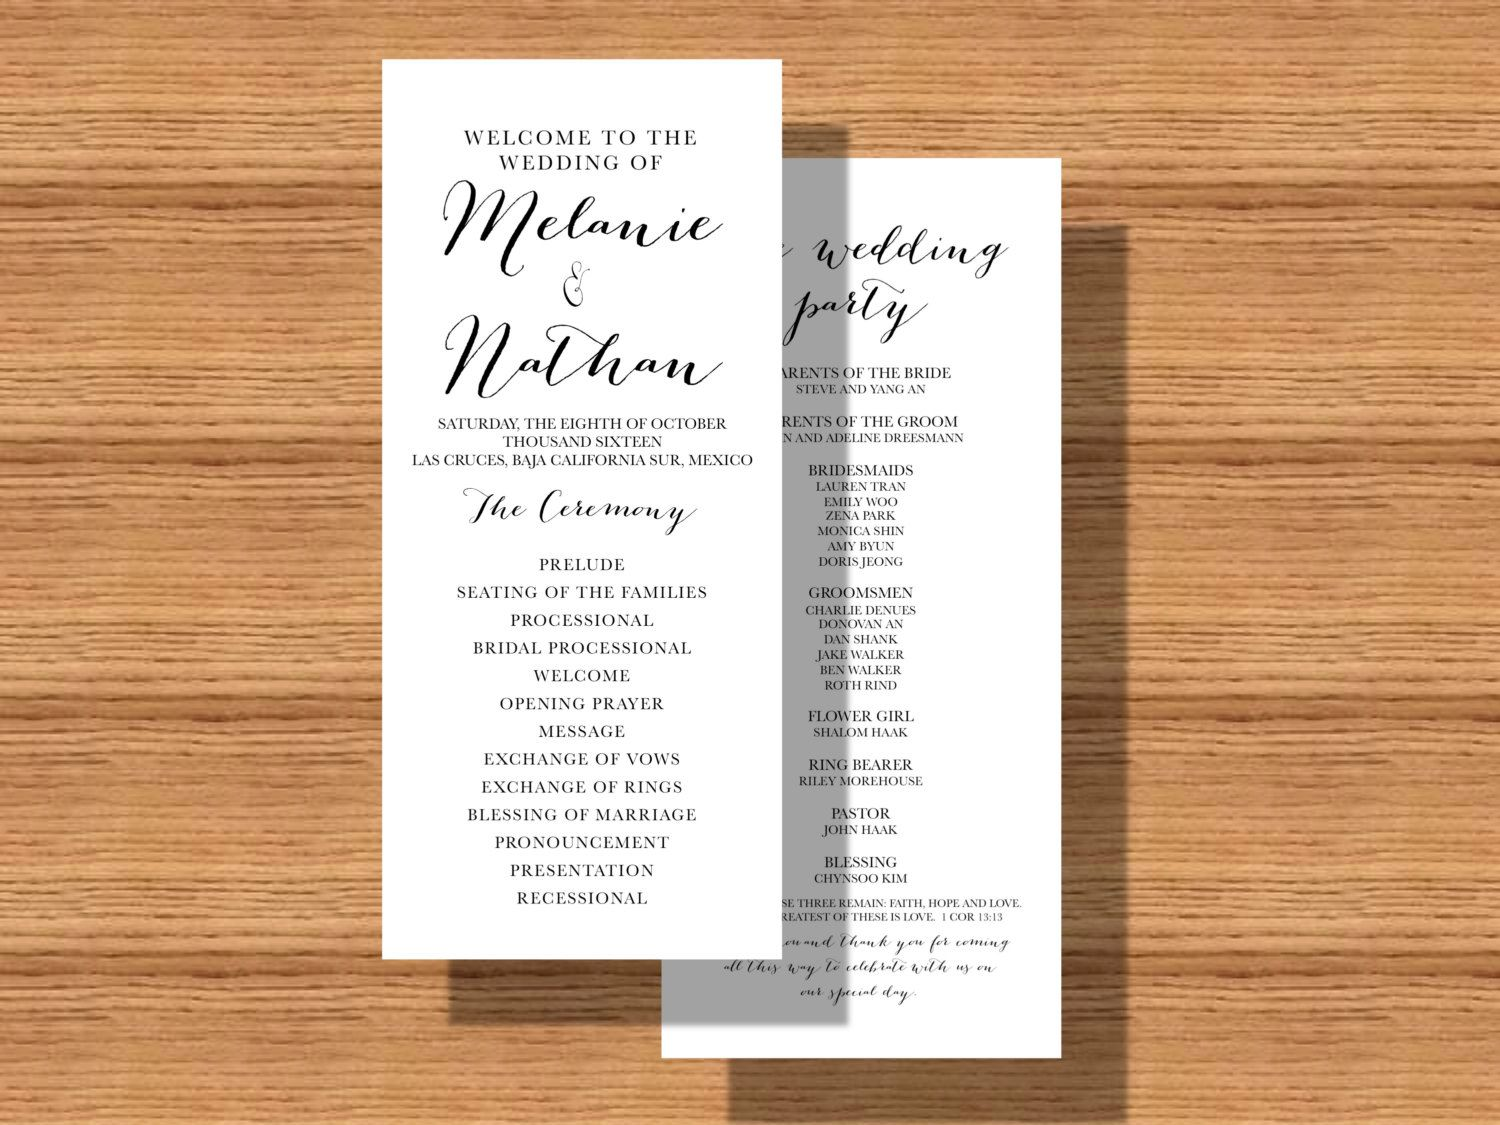 double sided wedding program printable wedding program wedding